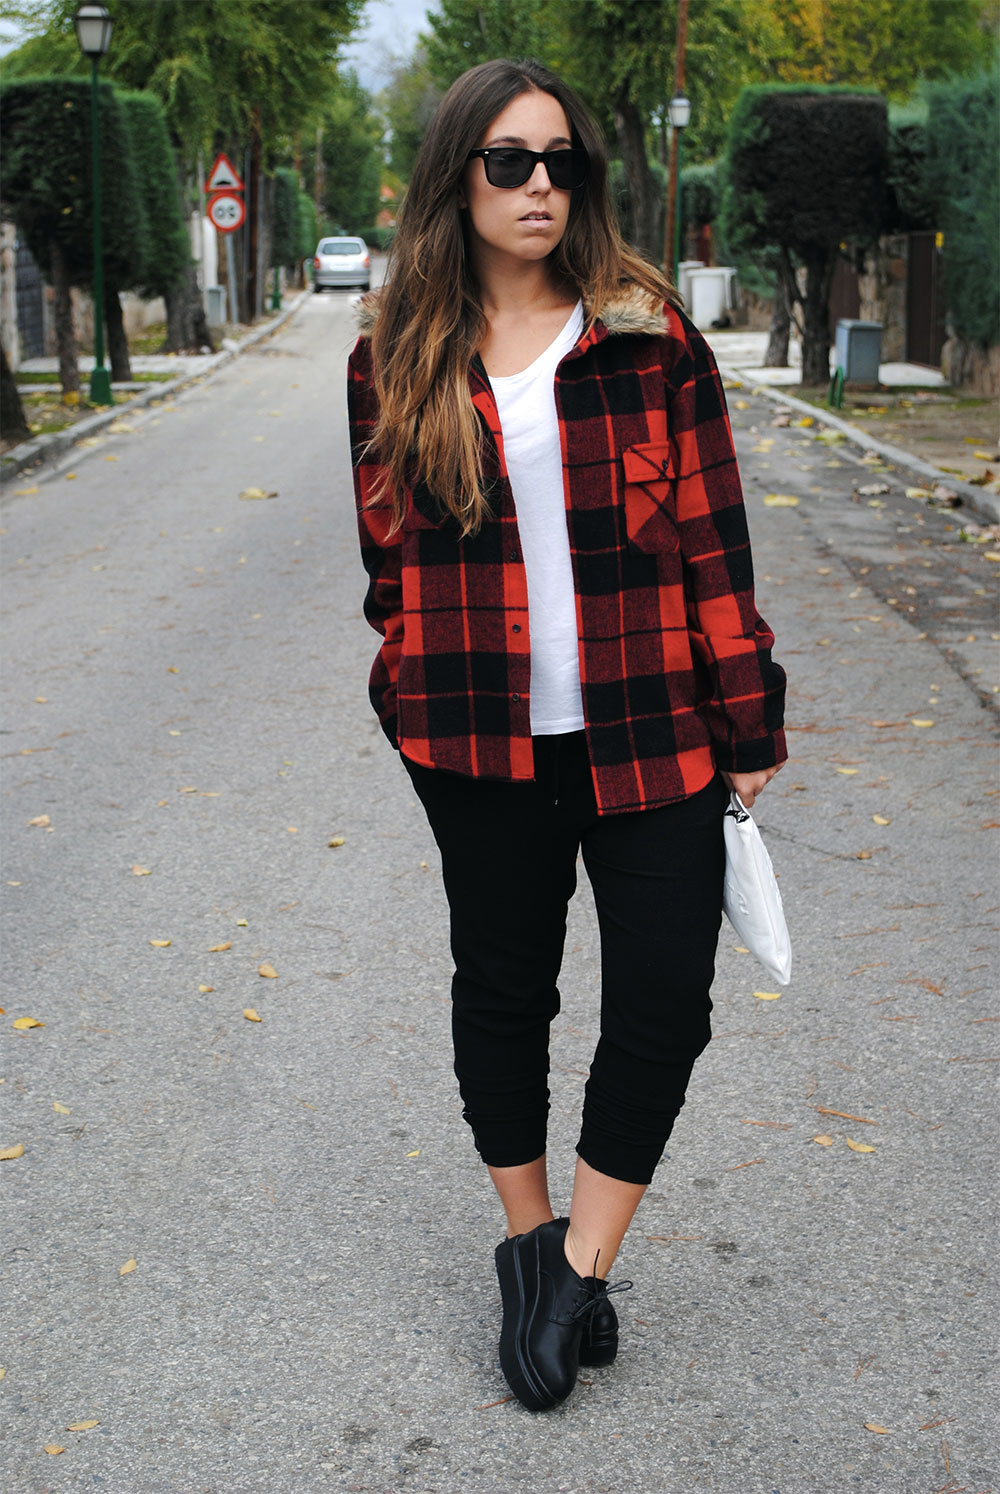 checkered shirt outfit